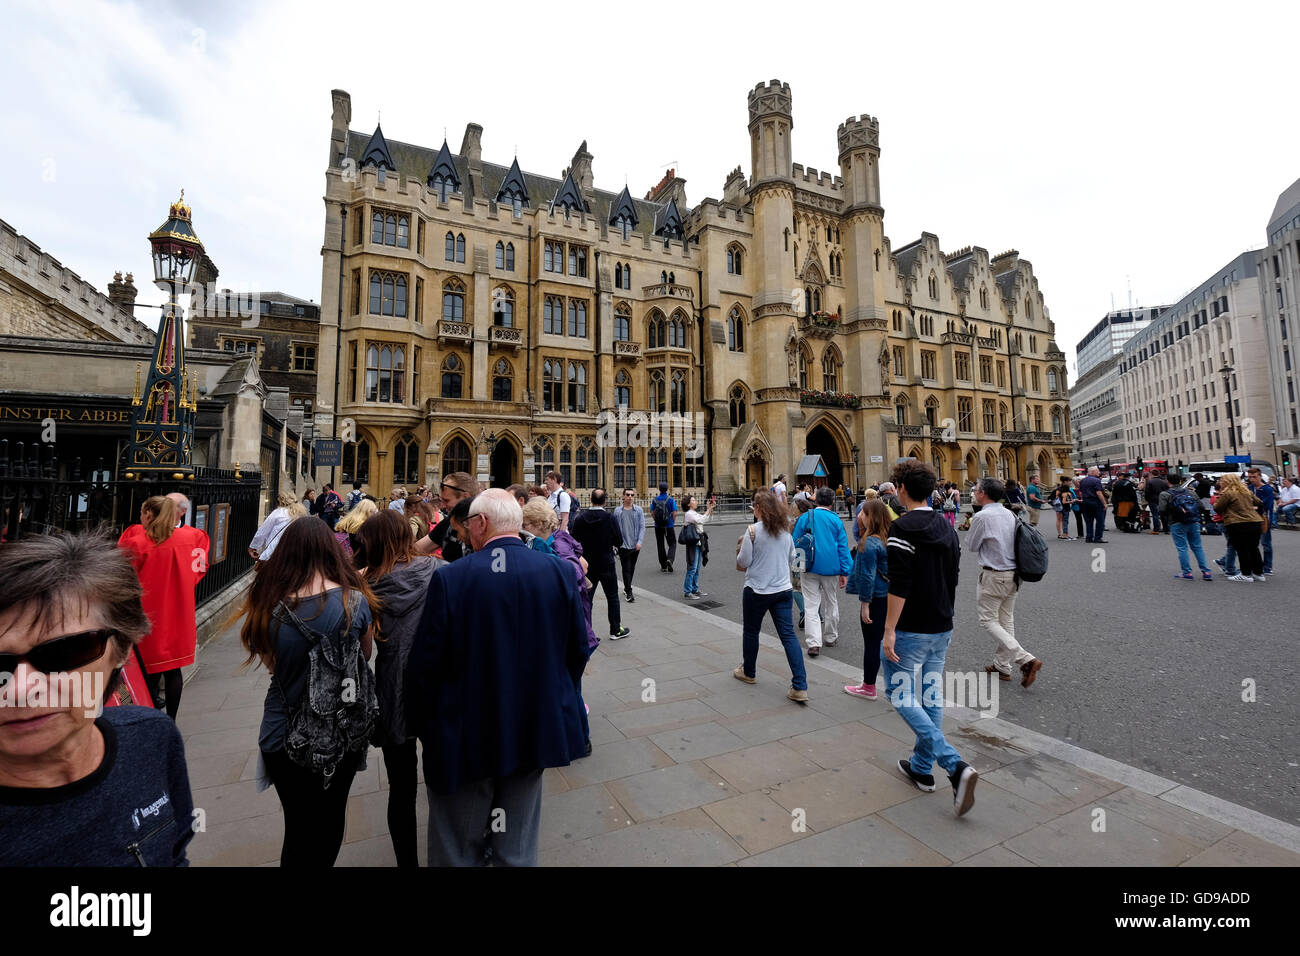 Dean's Yard, Westminster an historic building in London, - Stock Image